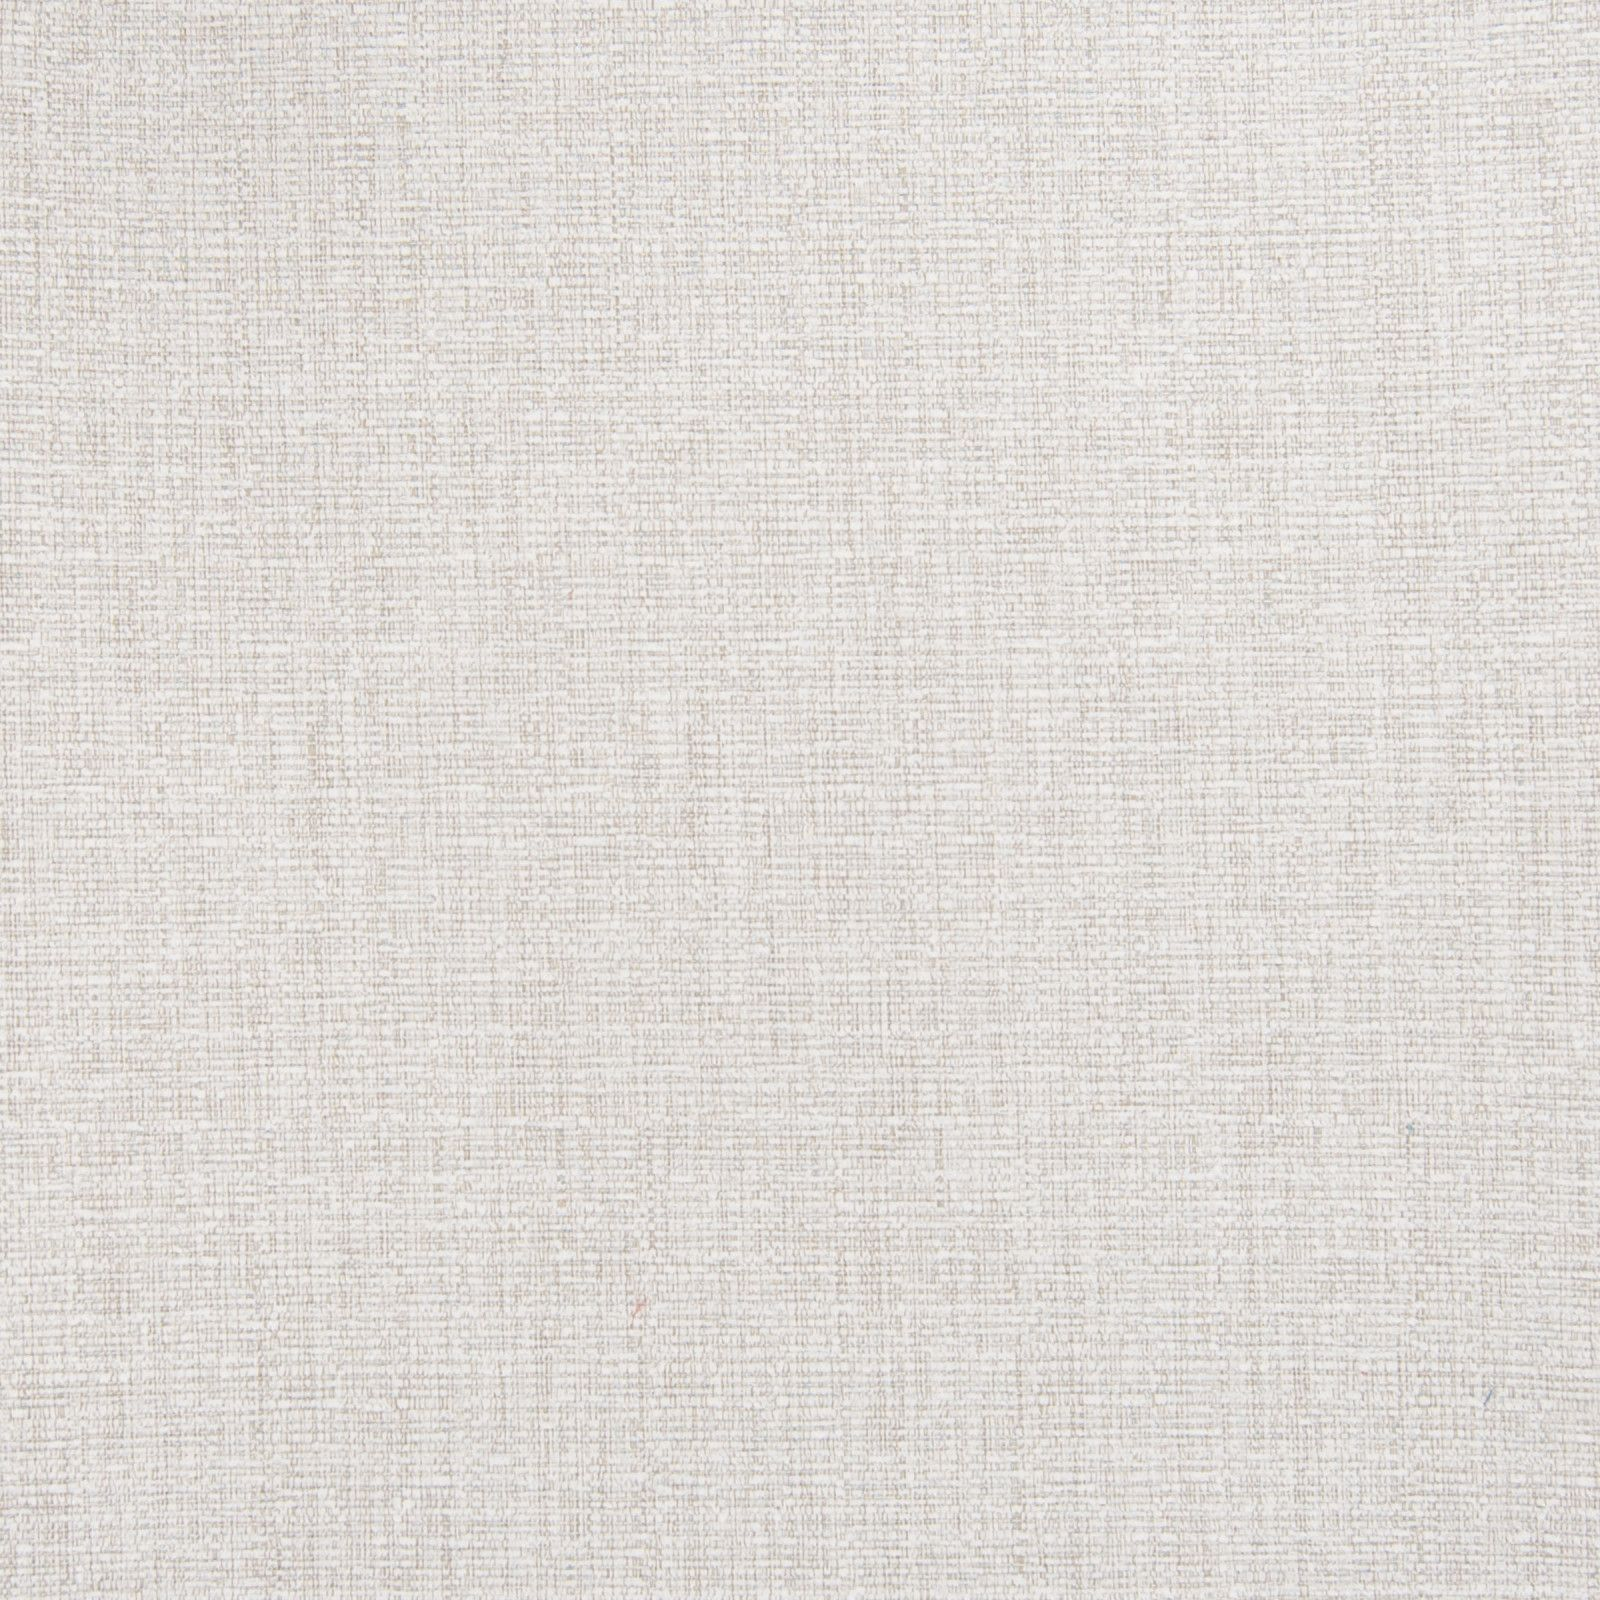 B5524 Alabaster Fabric Texture Greenhouse Fabrics